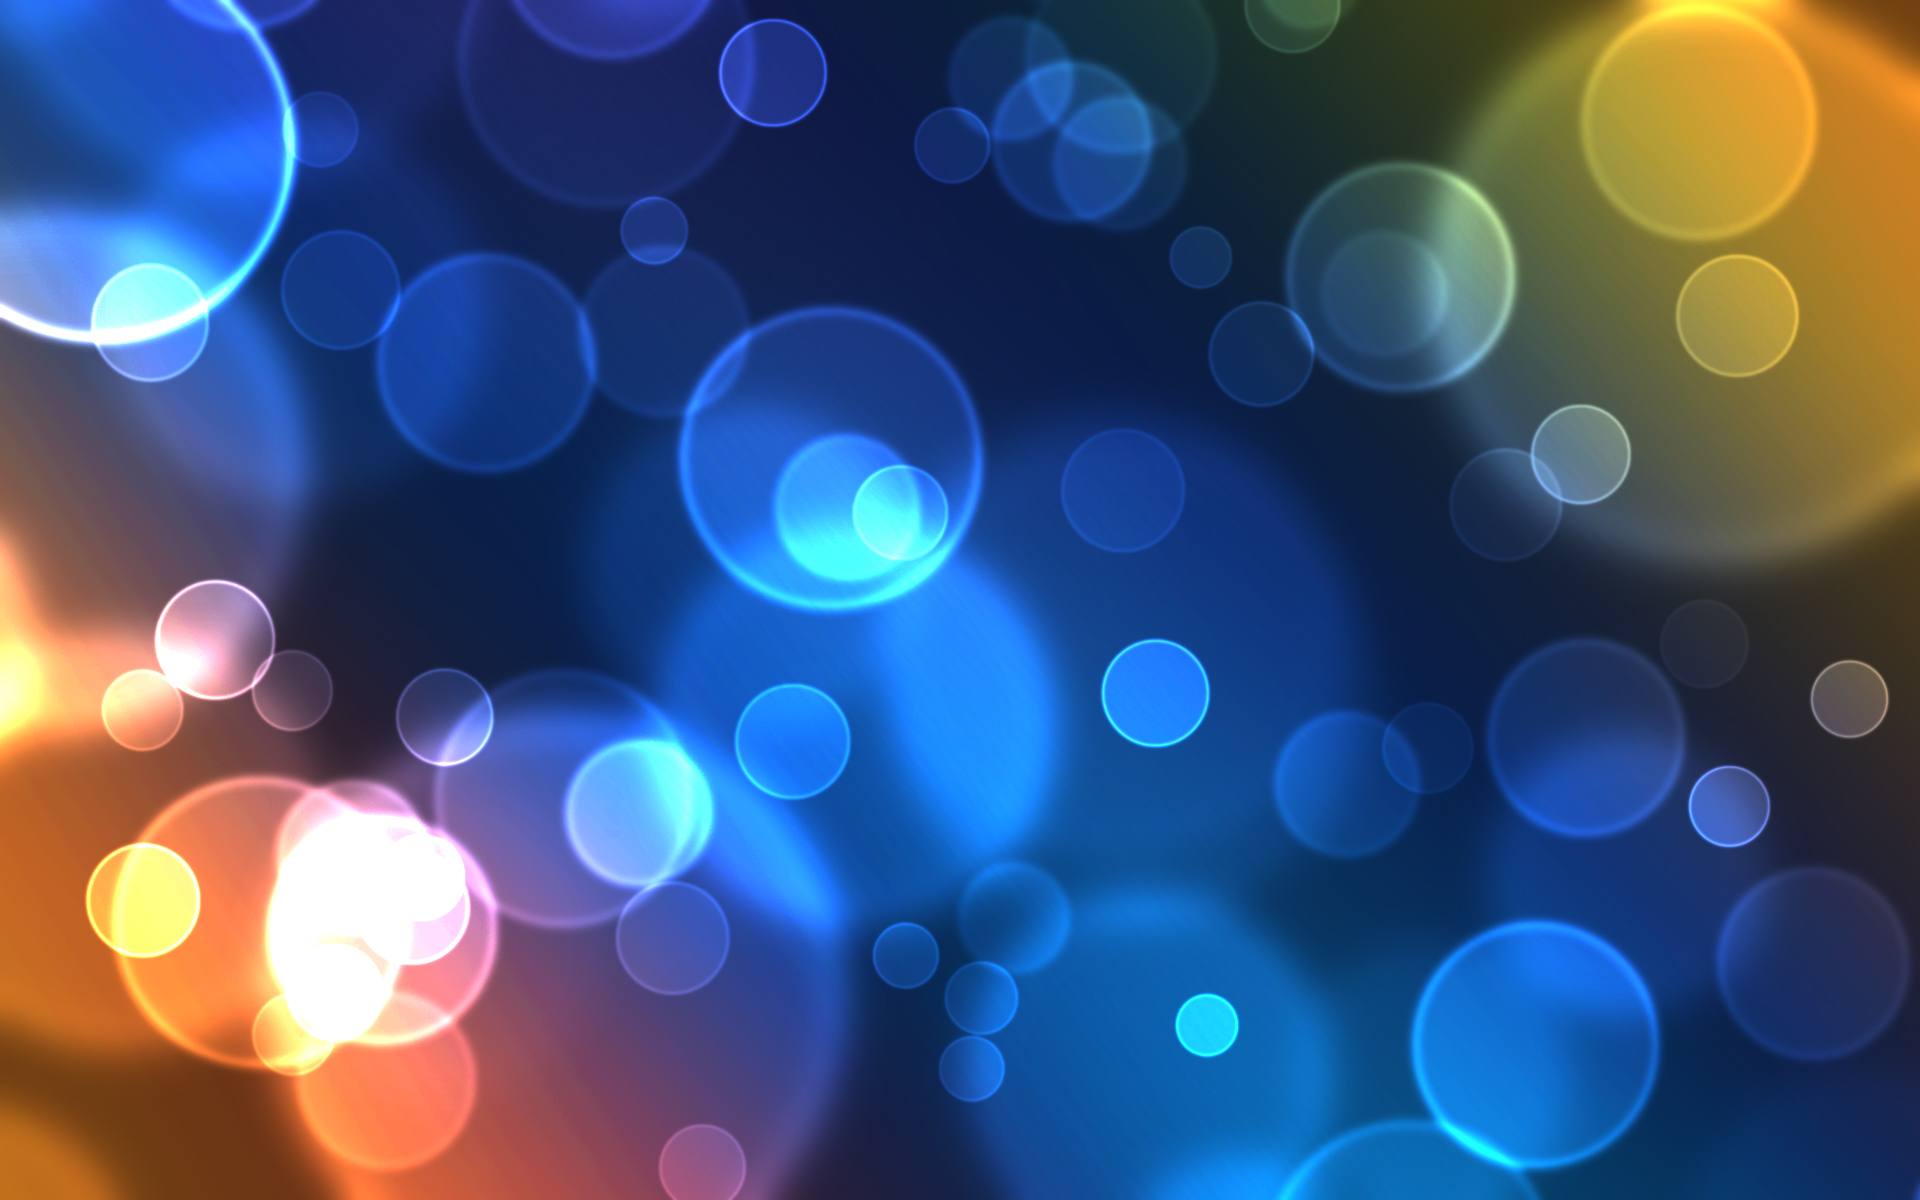 Awesome Blue Bubbles Wallpaper